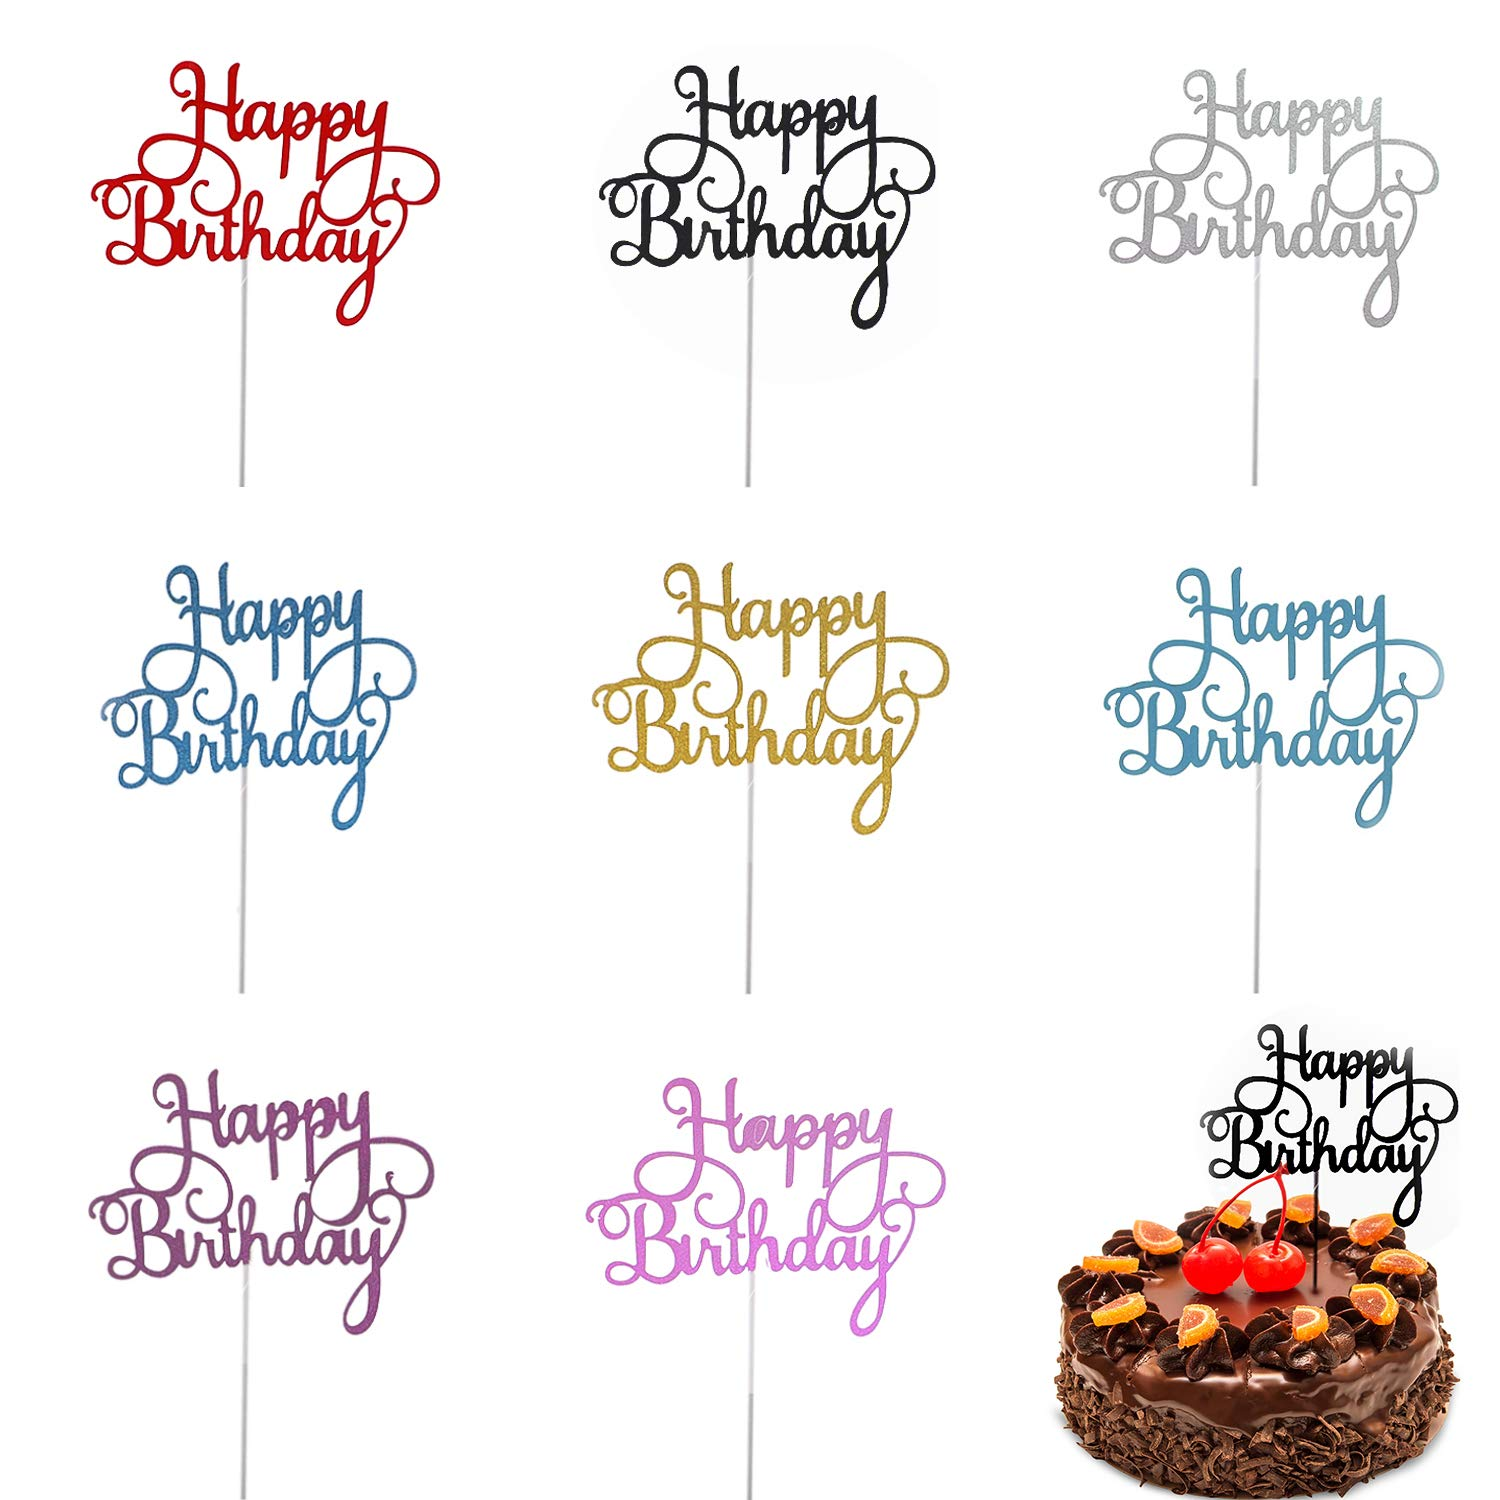 Trounistro Happy Birthday Cake Toppers 40 Pieces Cake Toppers Glitter Cardstock Topper Letters Happy Birthday For Your Friends And Family Party Decorations Eight Color Amazon Com Grocery Gourmet Food